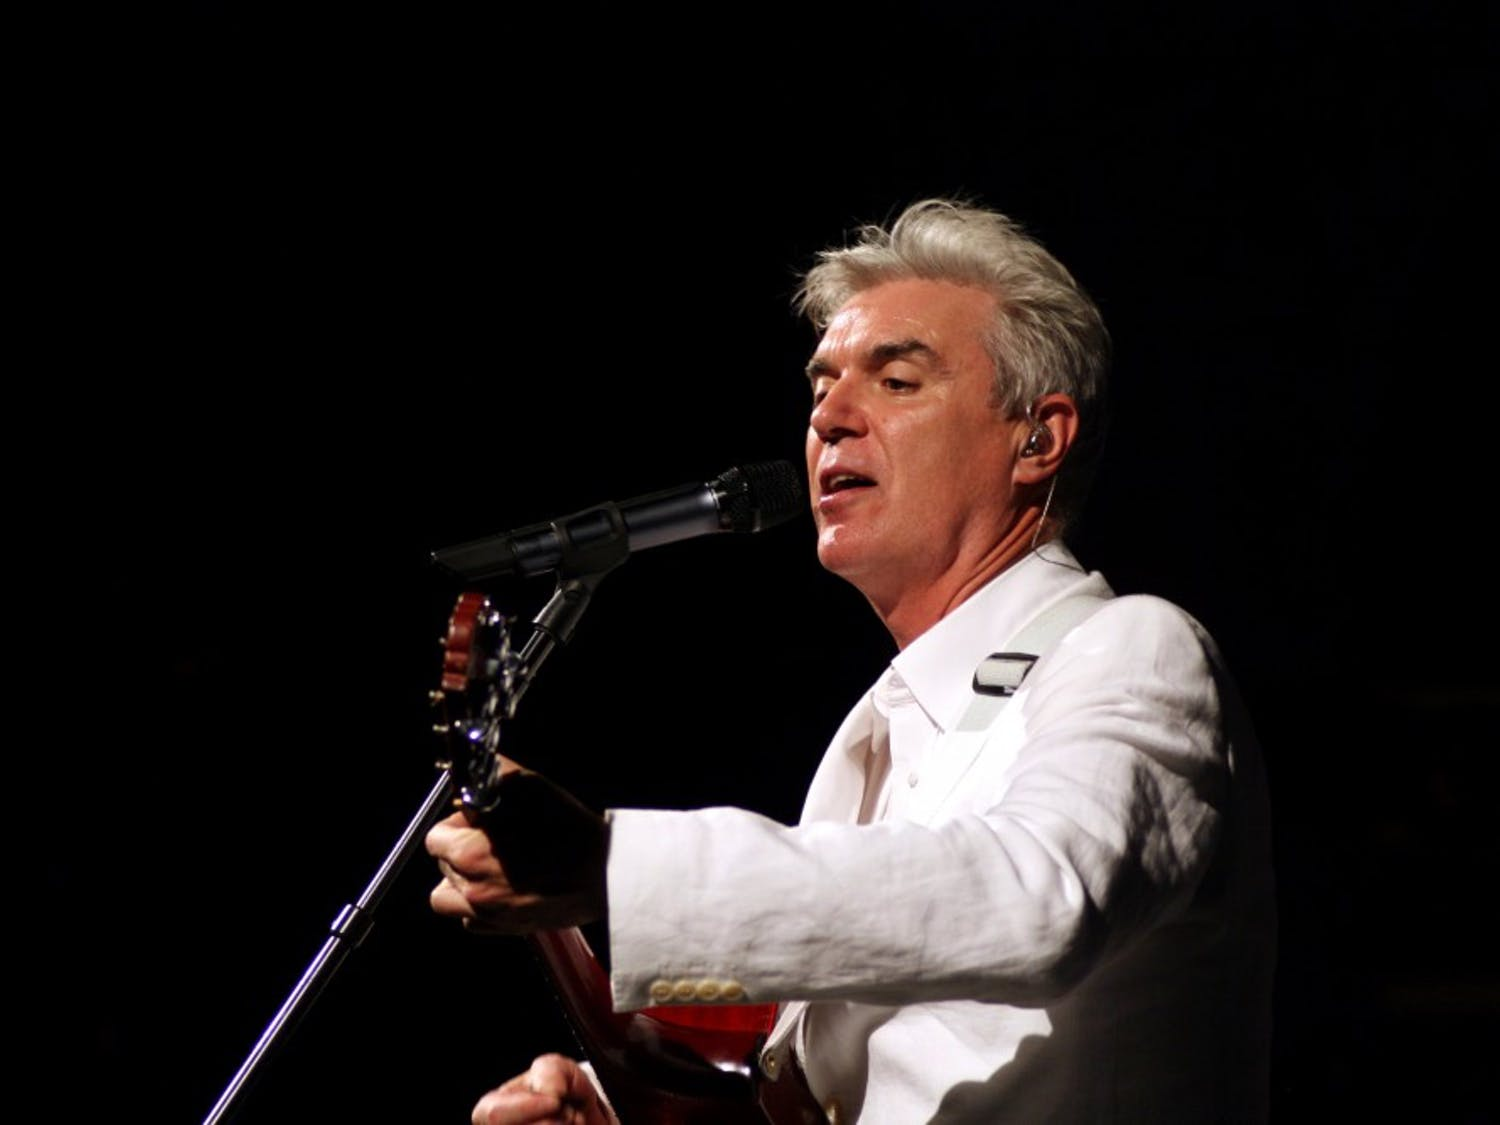 Former Talking Heads frontman David Byrne performed Tuesday night at the Center for the Arts. Byrne played classics from his seminal band as well as modern collaborations and a Janelle Monáe protest song.